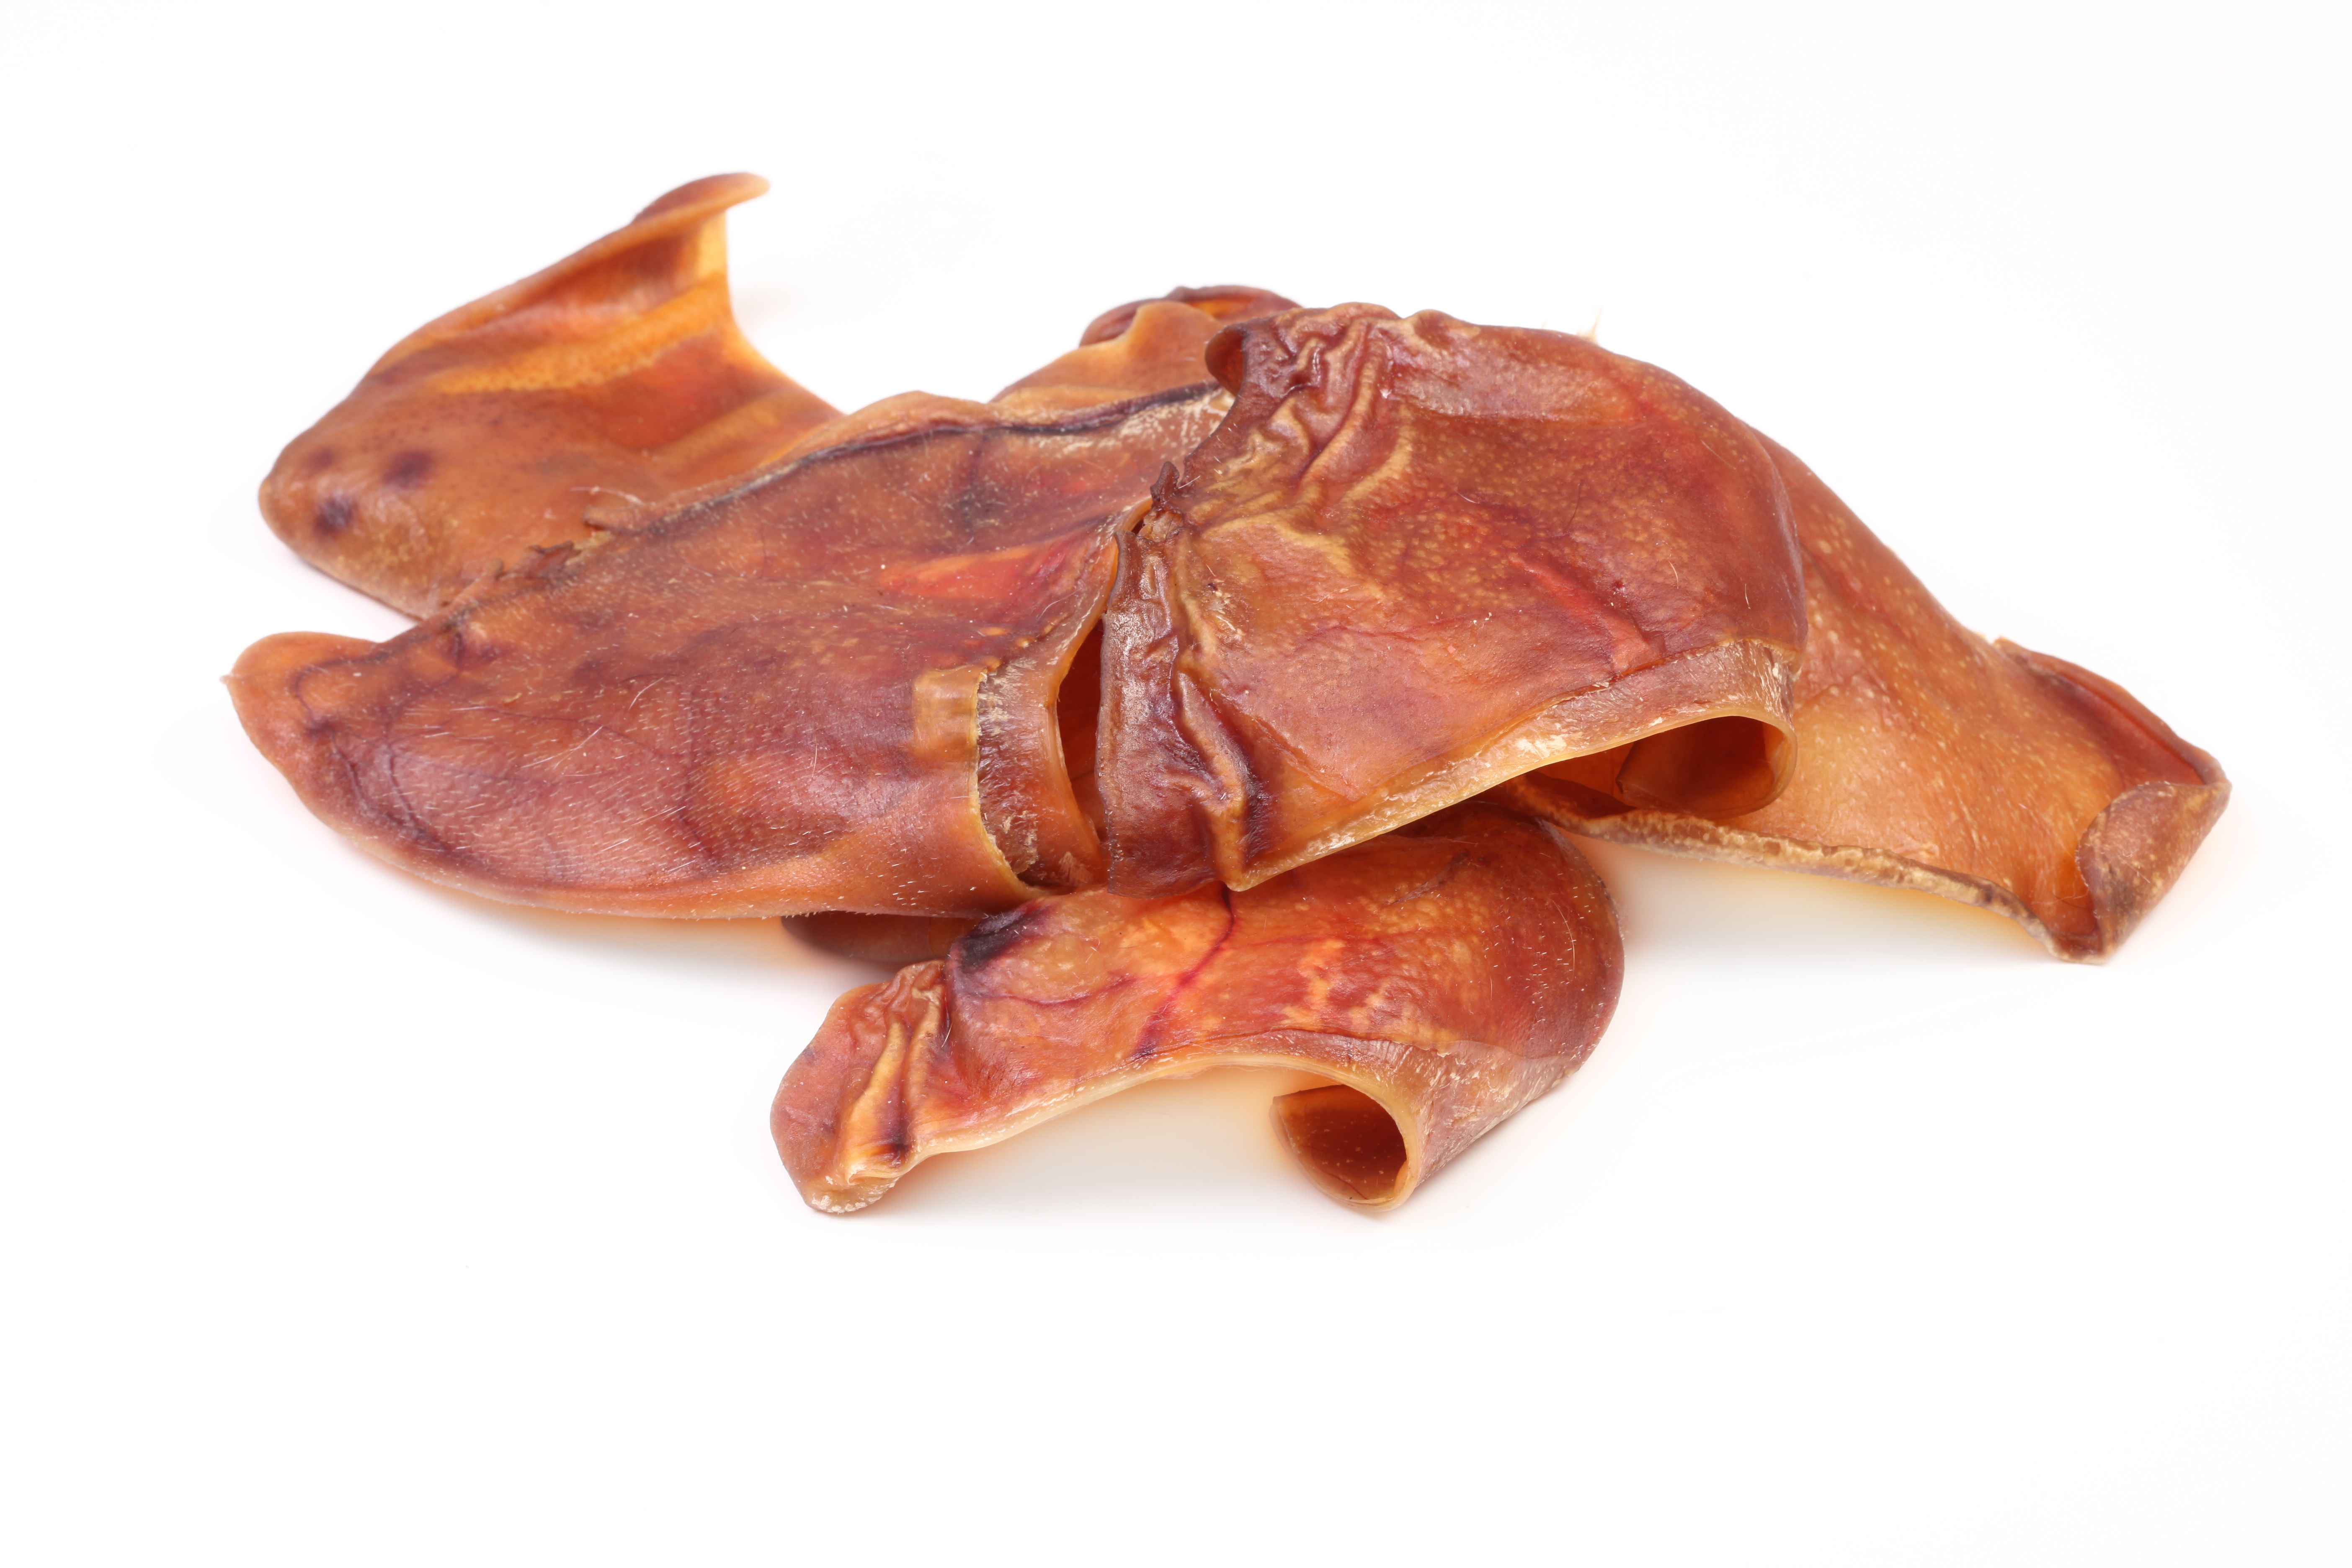 Pig ear dog treats recalled as FDA and CDC probe salmonella outbreak